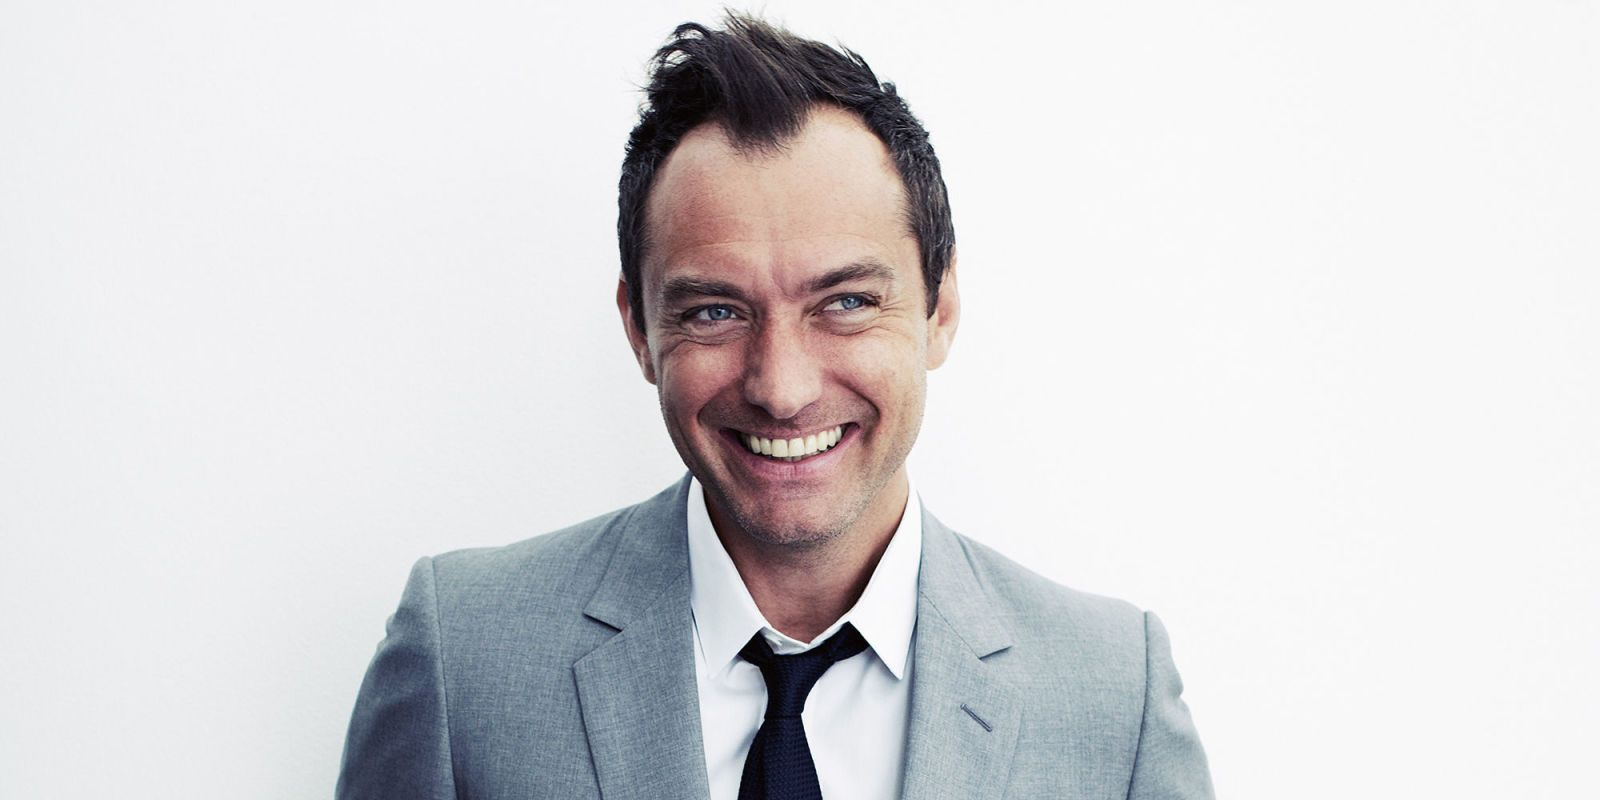 Jude Law: The Esquire Cover Interview